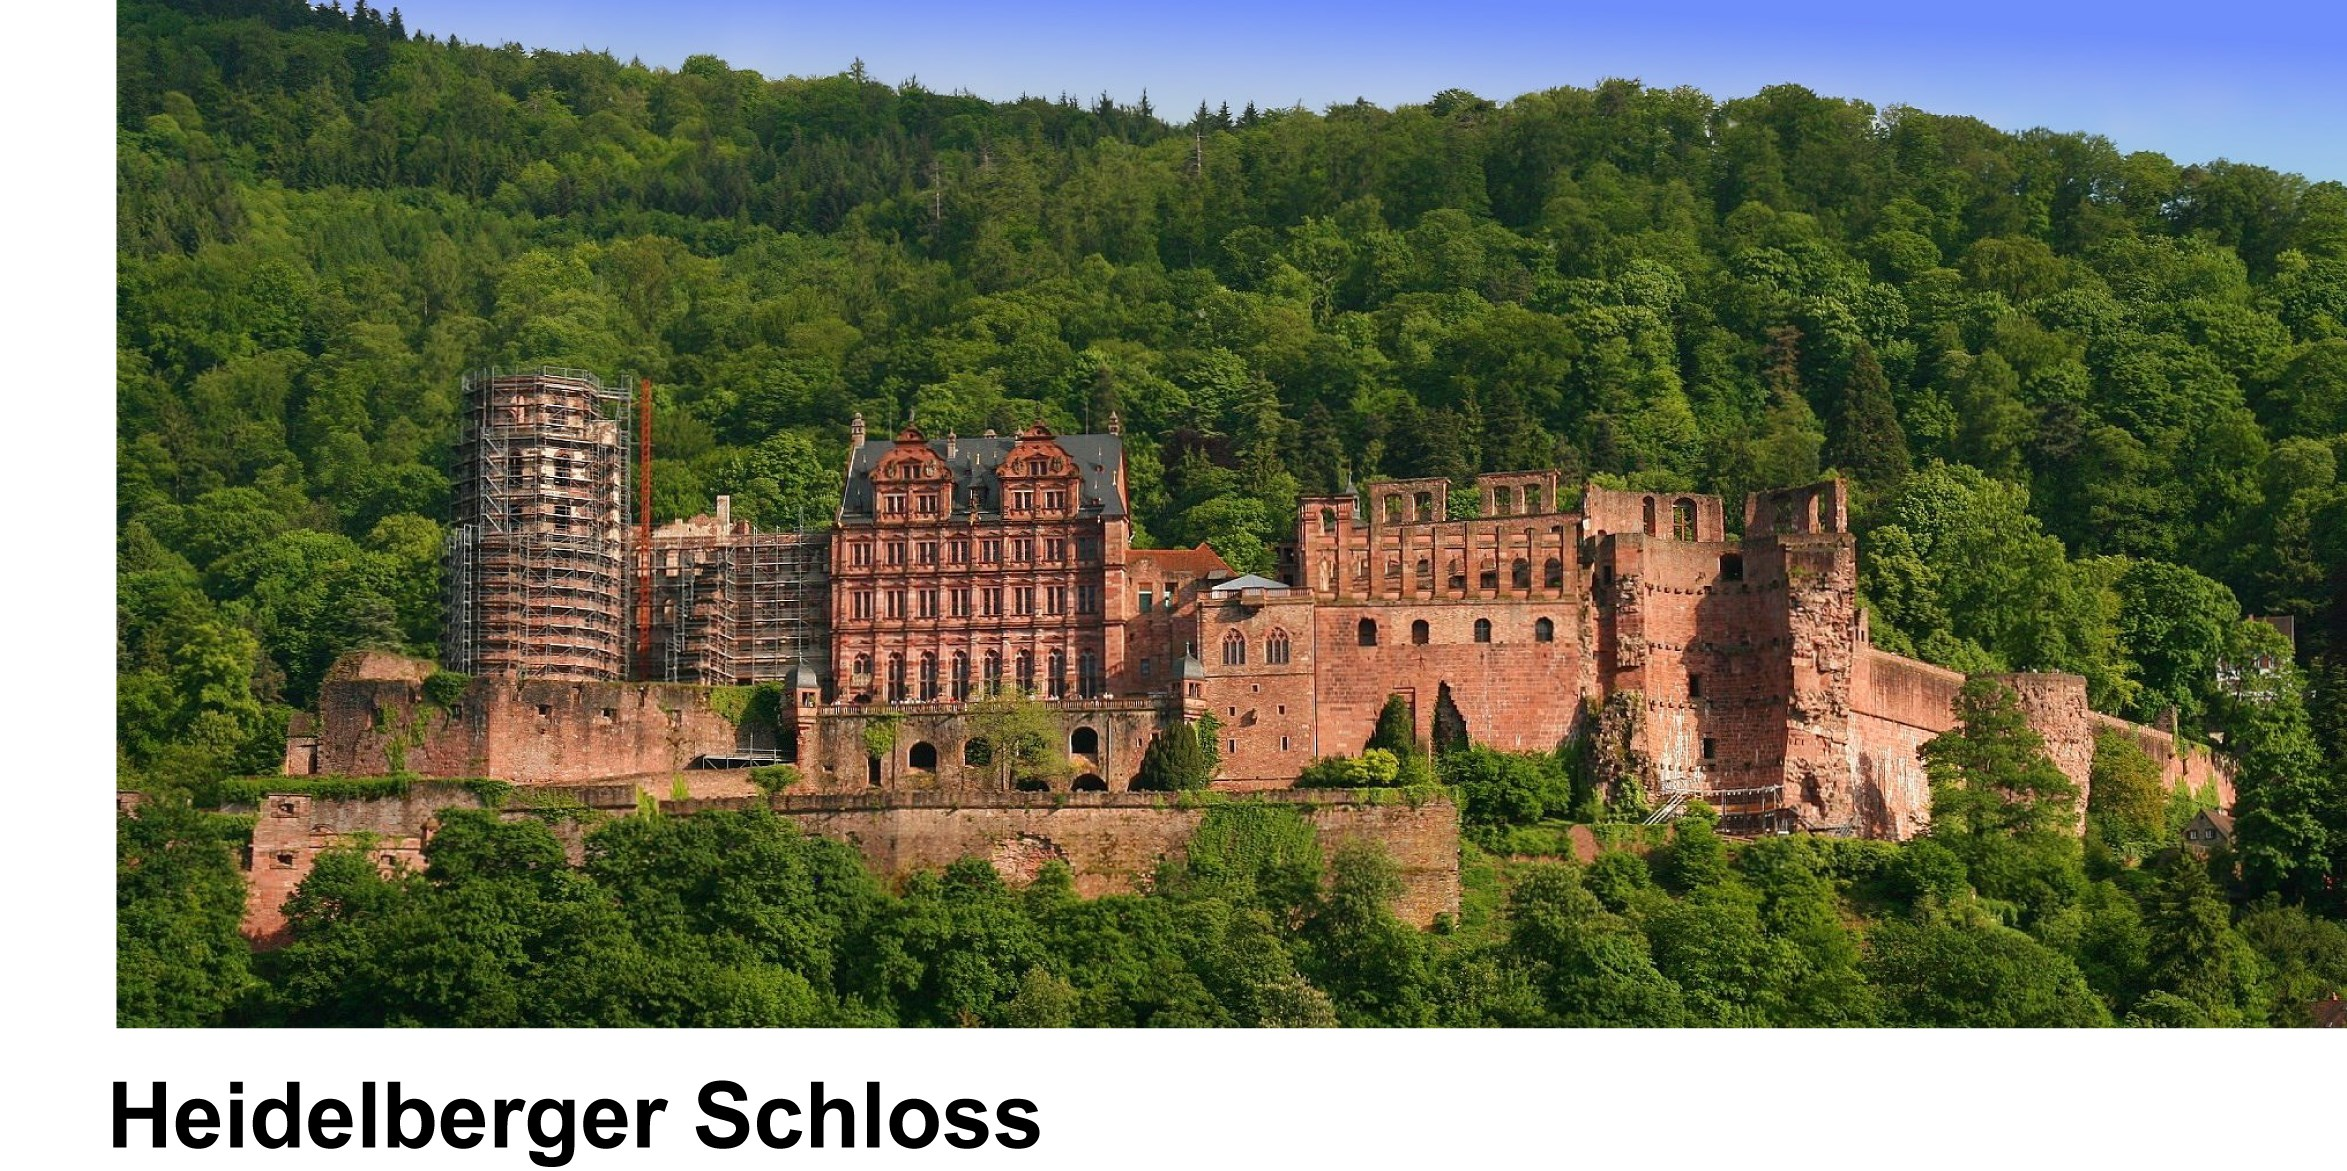 schl sser und burgen in baden w rttemberg heidelberger schloss. Black Bedroom Furniture Sets. Home Design Ideas